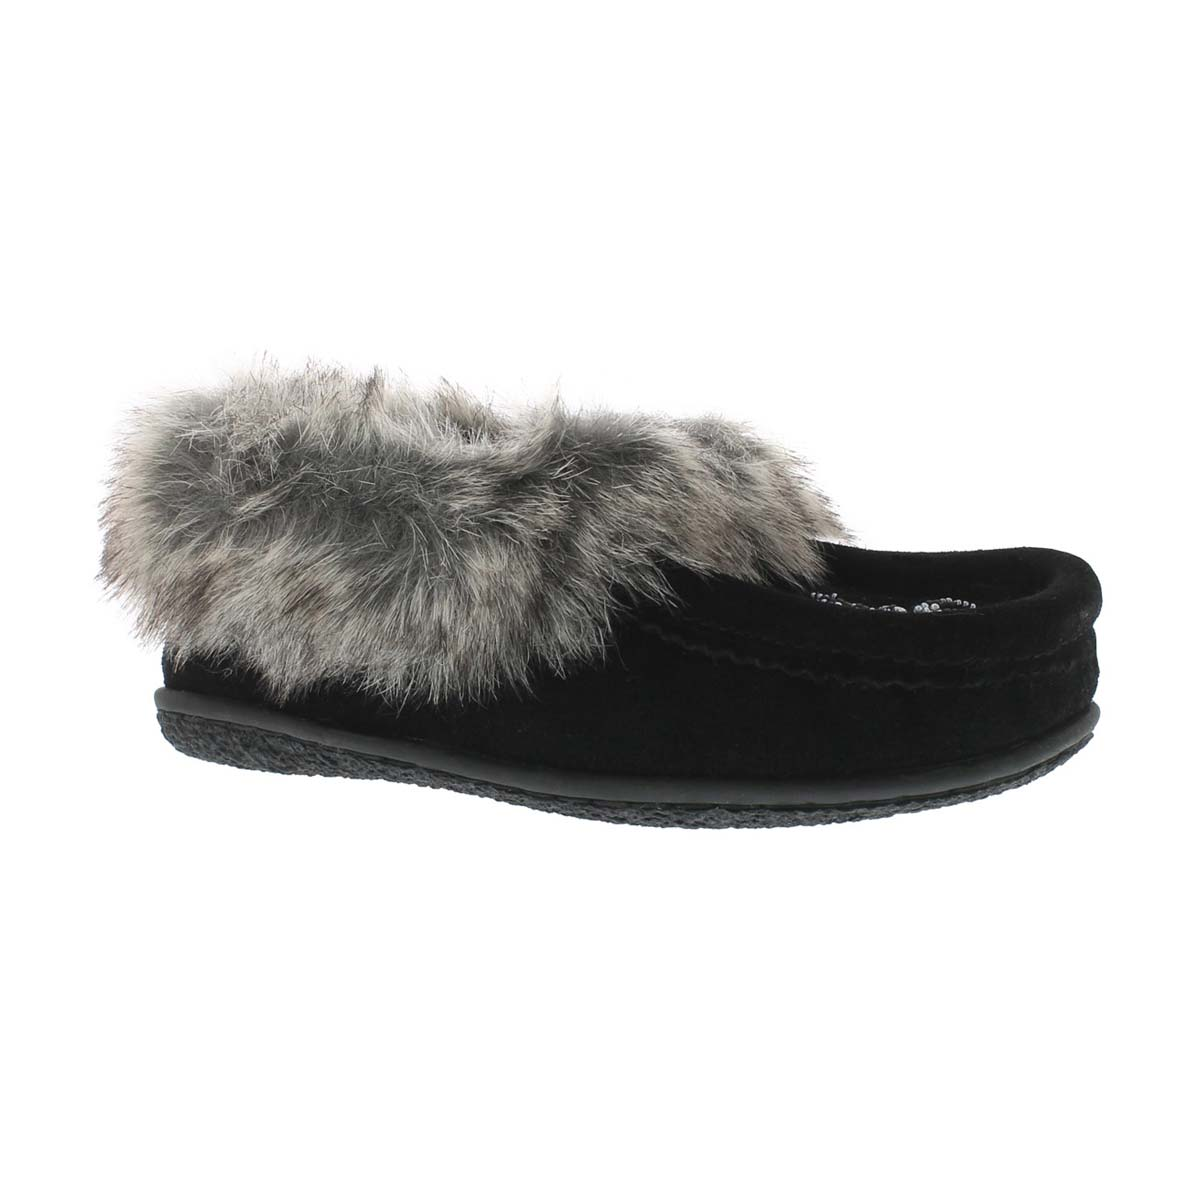 Girls' CUTE 2 JR black faux rabbit moccasins